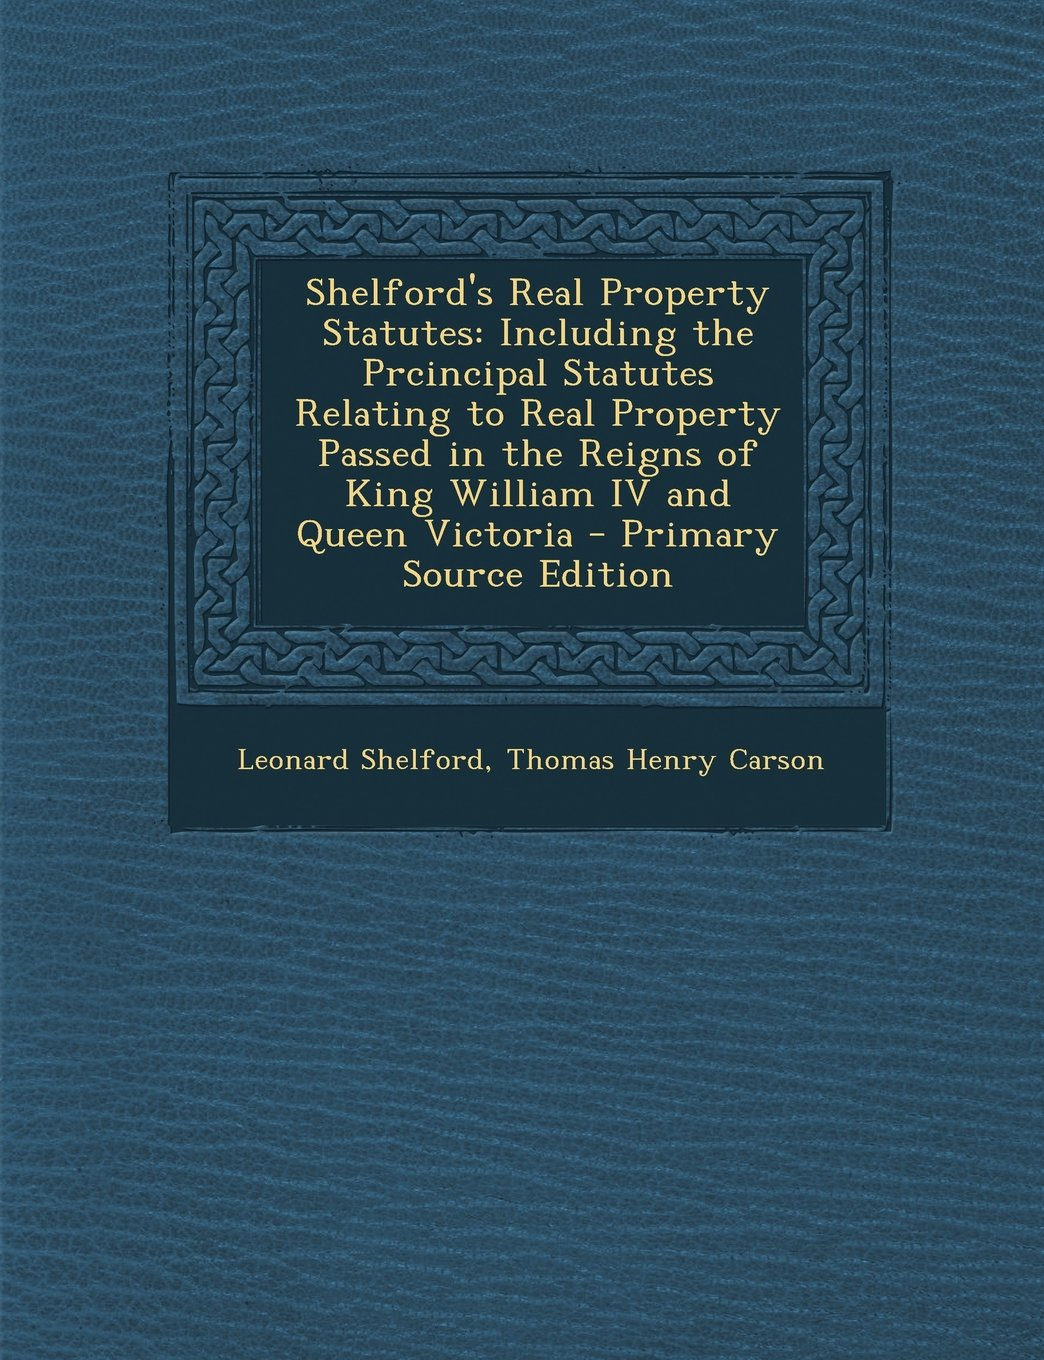 Shelford's Real Property Statutes: Including the Prcincipal Statutes Relating to Real Property Passed in the Reigns of King William IV and Queen Victo ebook